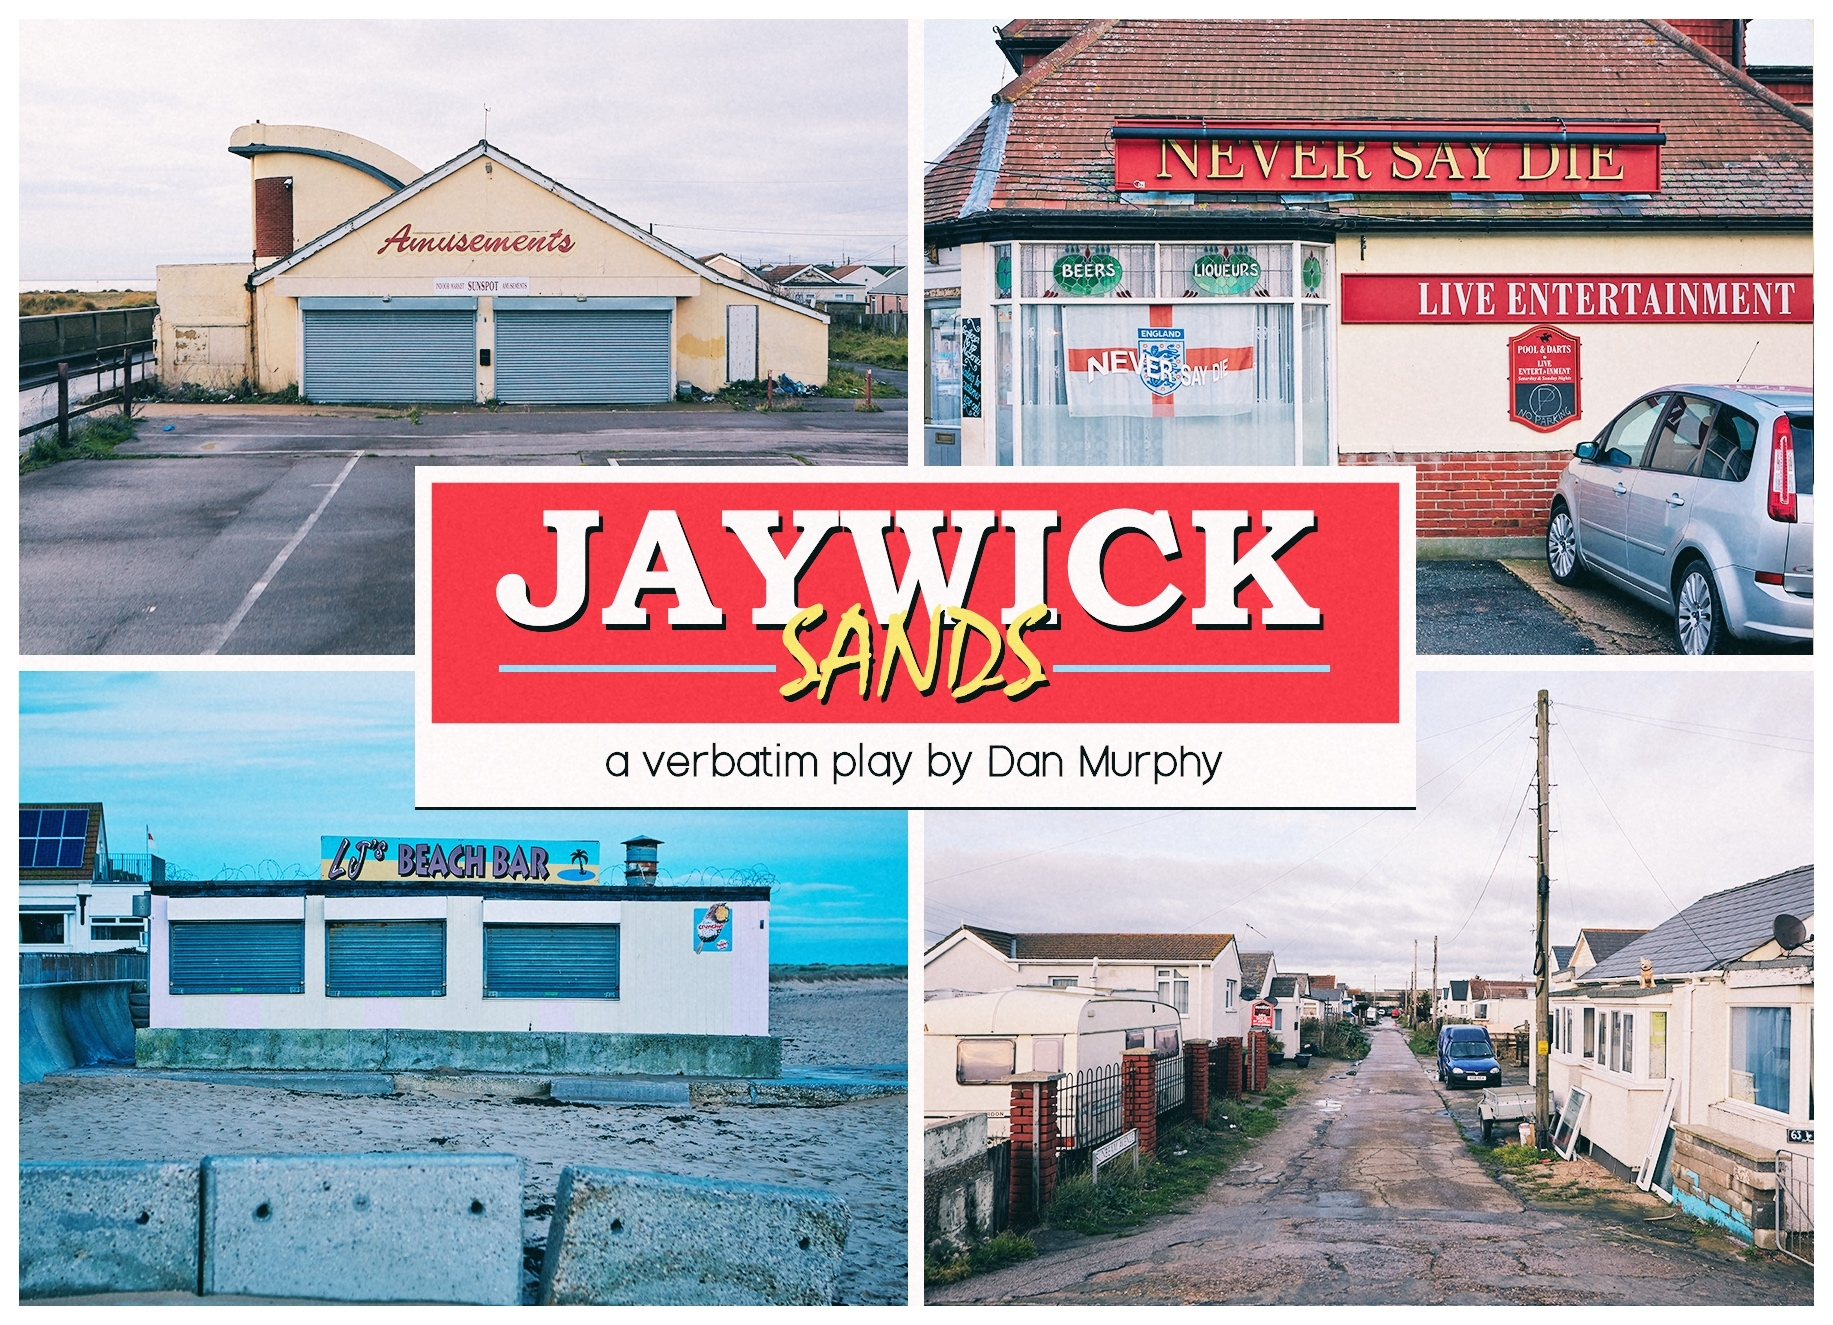 Jaywick Sands: Verbatim Play